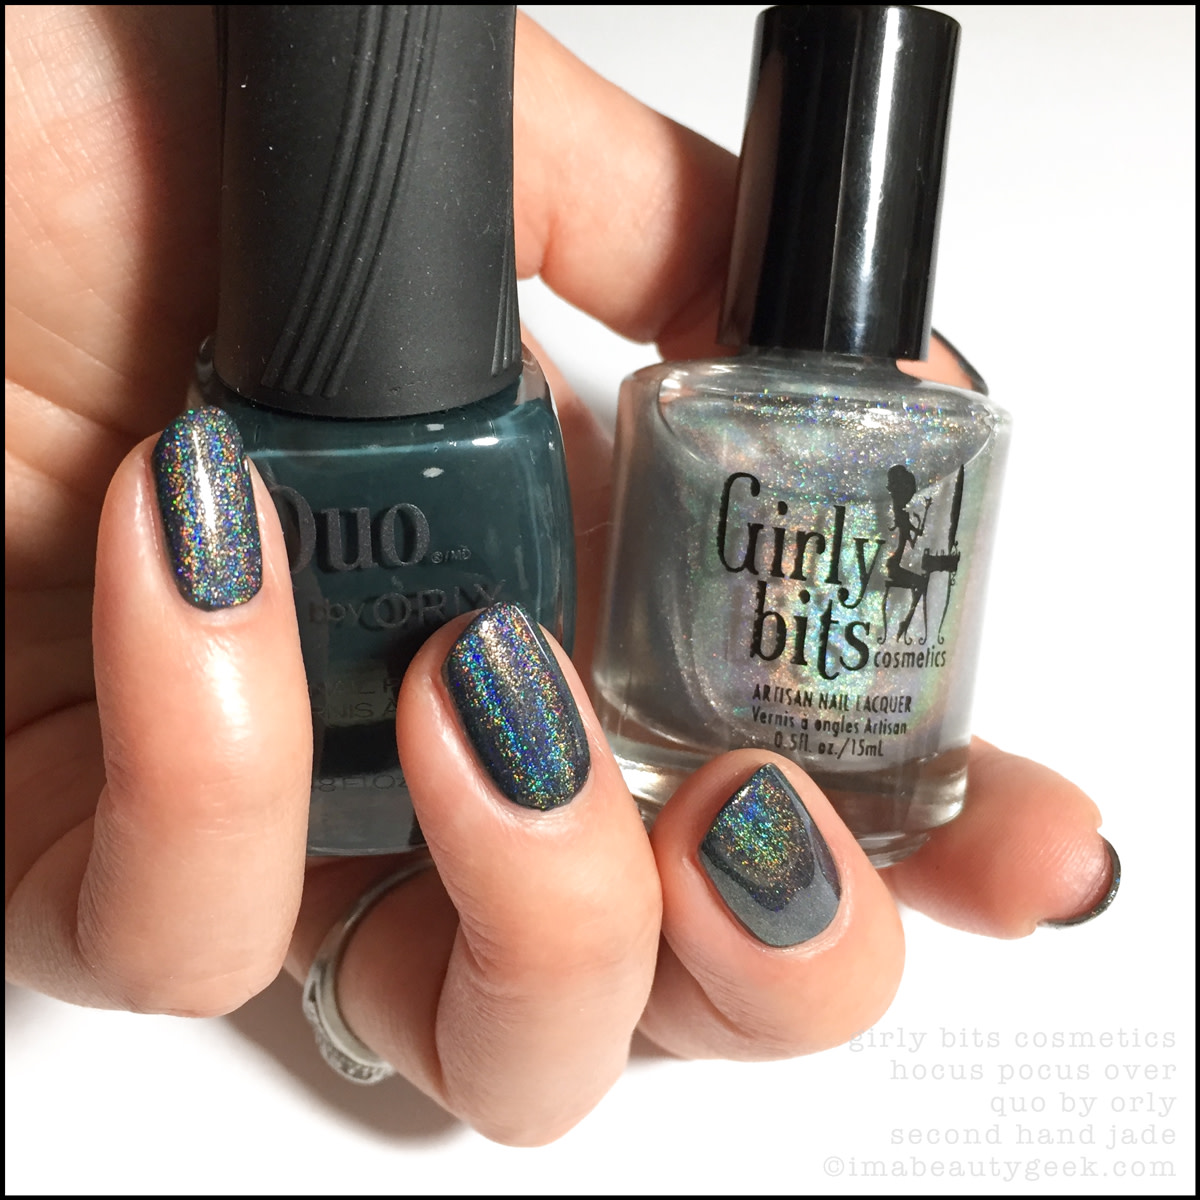 Girly Bits Hocus Pocus over Quo by Orly Second Hand Jade